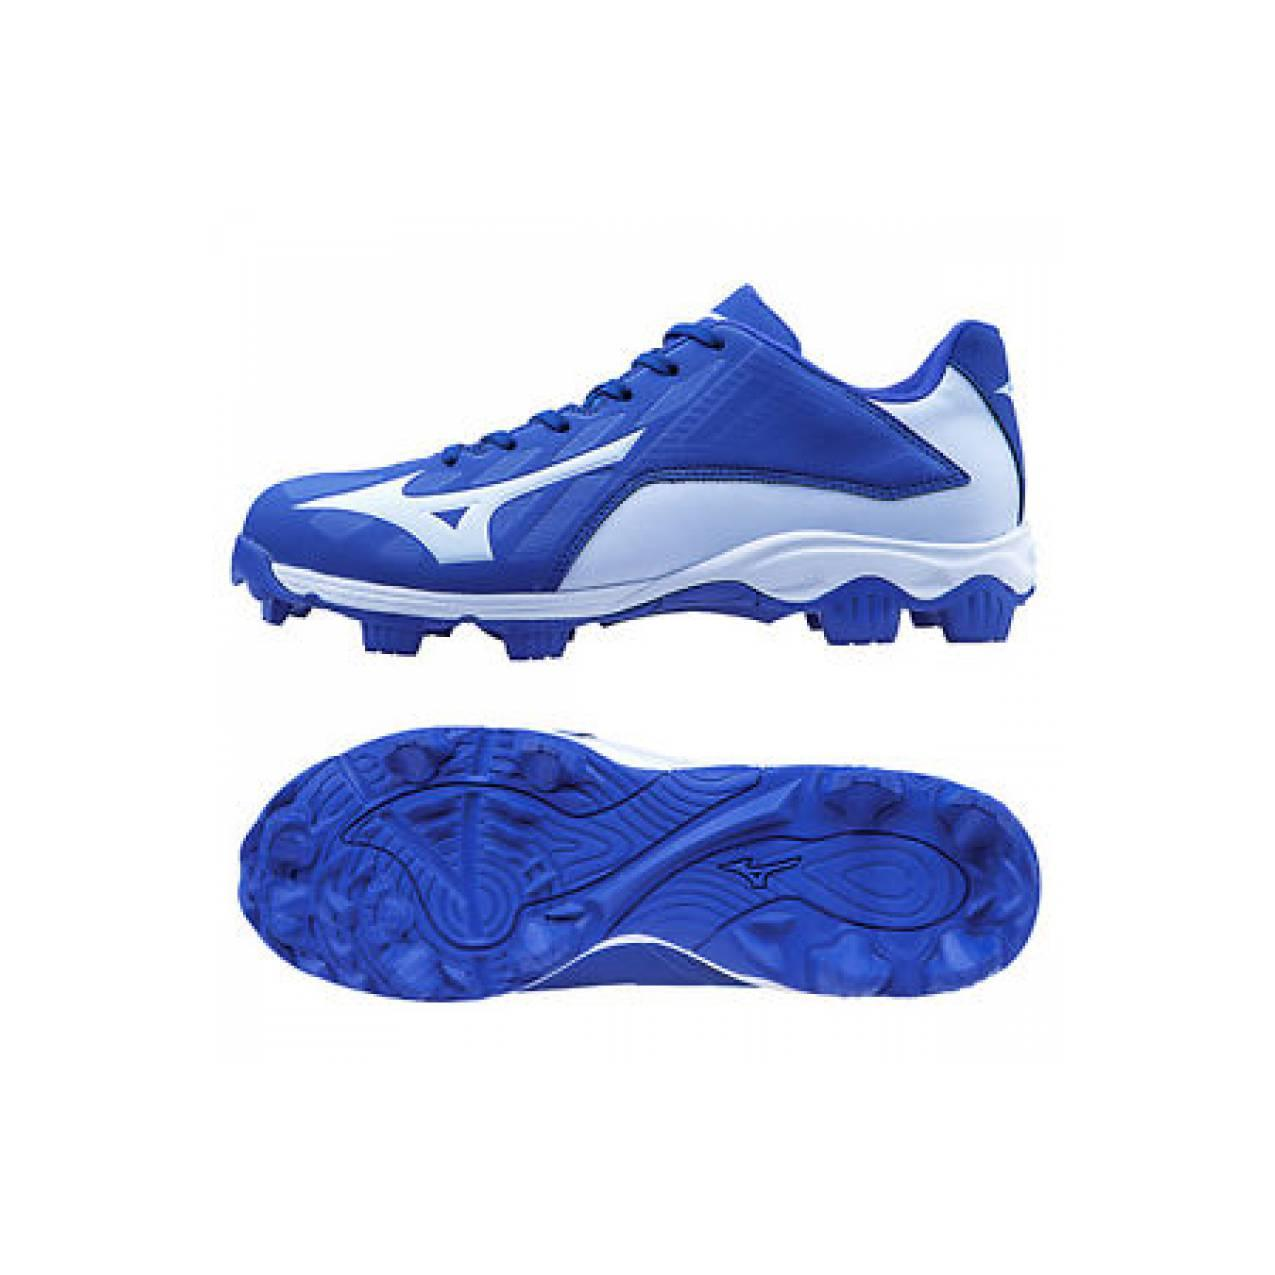 Mizuno 9 Spike Advanced Franchise 8 Baseball Cleats Shoes Blue/White 3